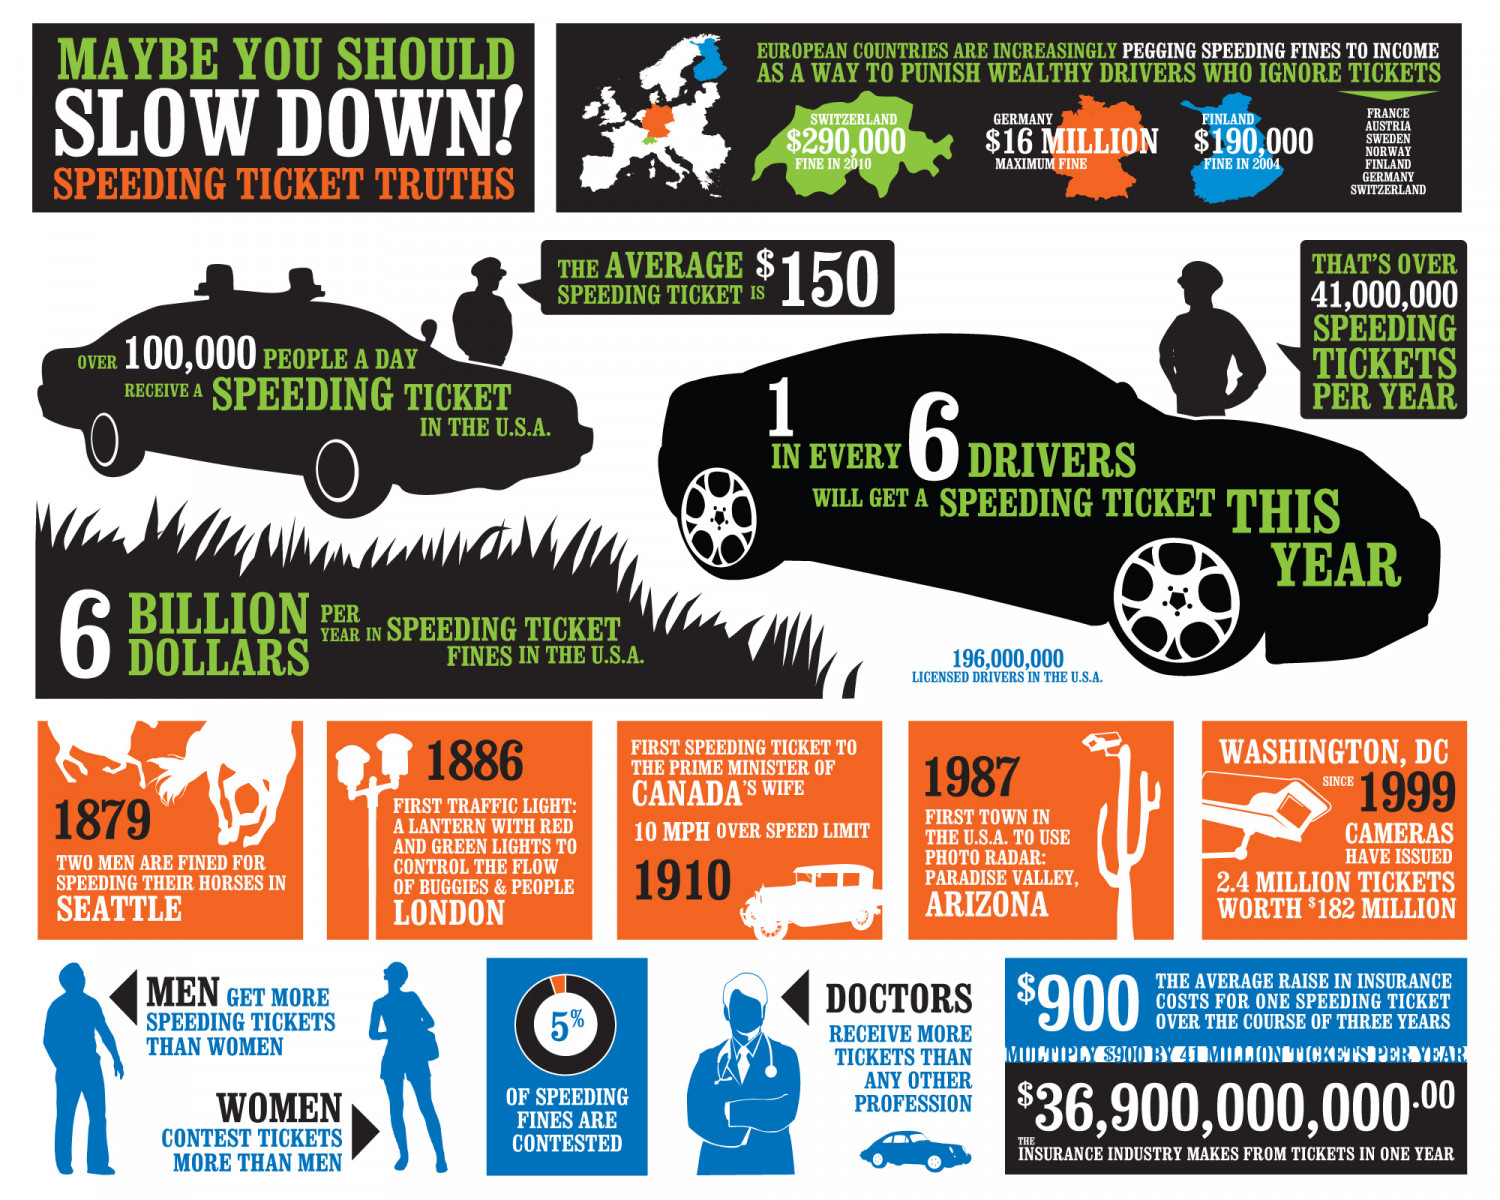 Speeding Ticket Truths Infographic